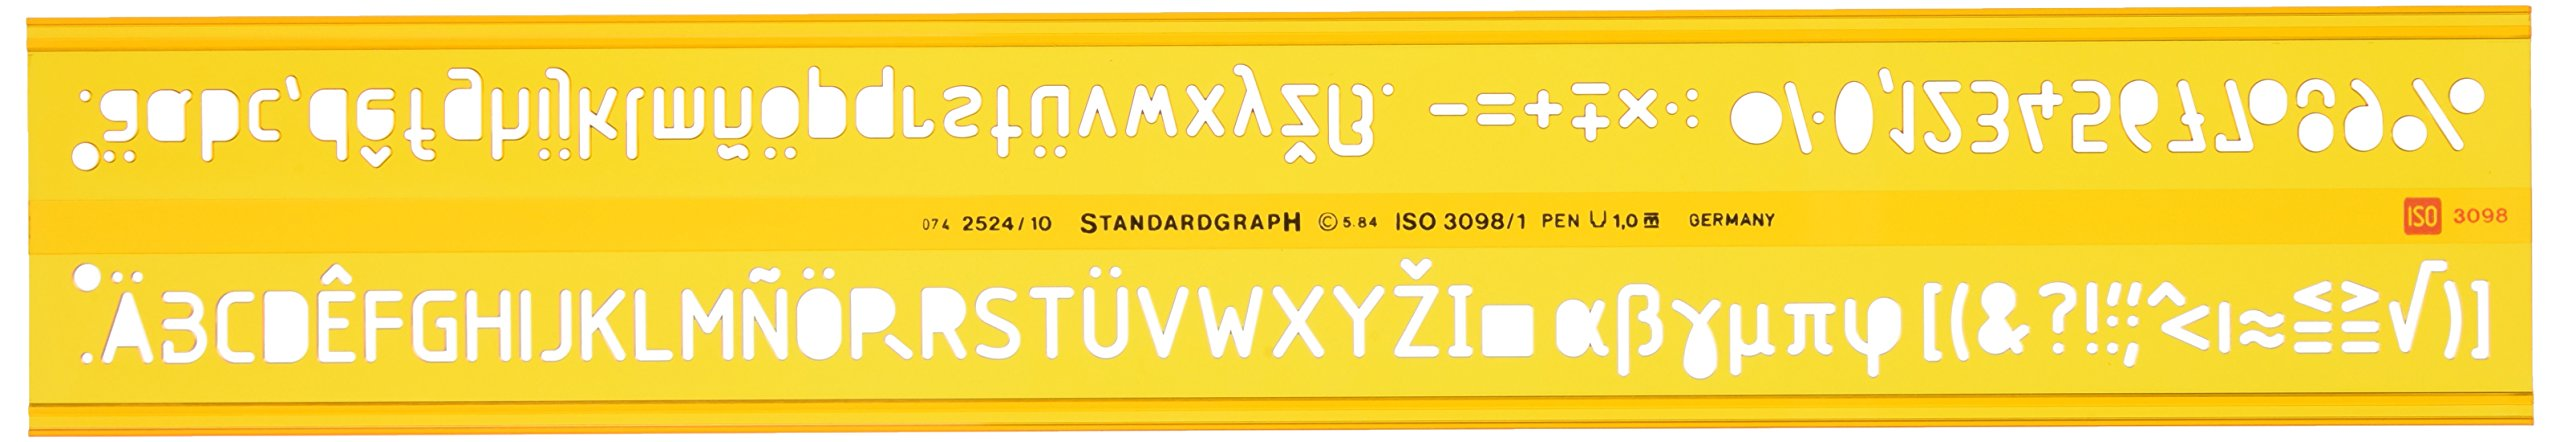 Graphoplex GXST2524/10 Iso Letter Stencil 10 mm Orange Crystal Clear